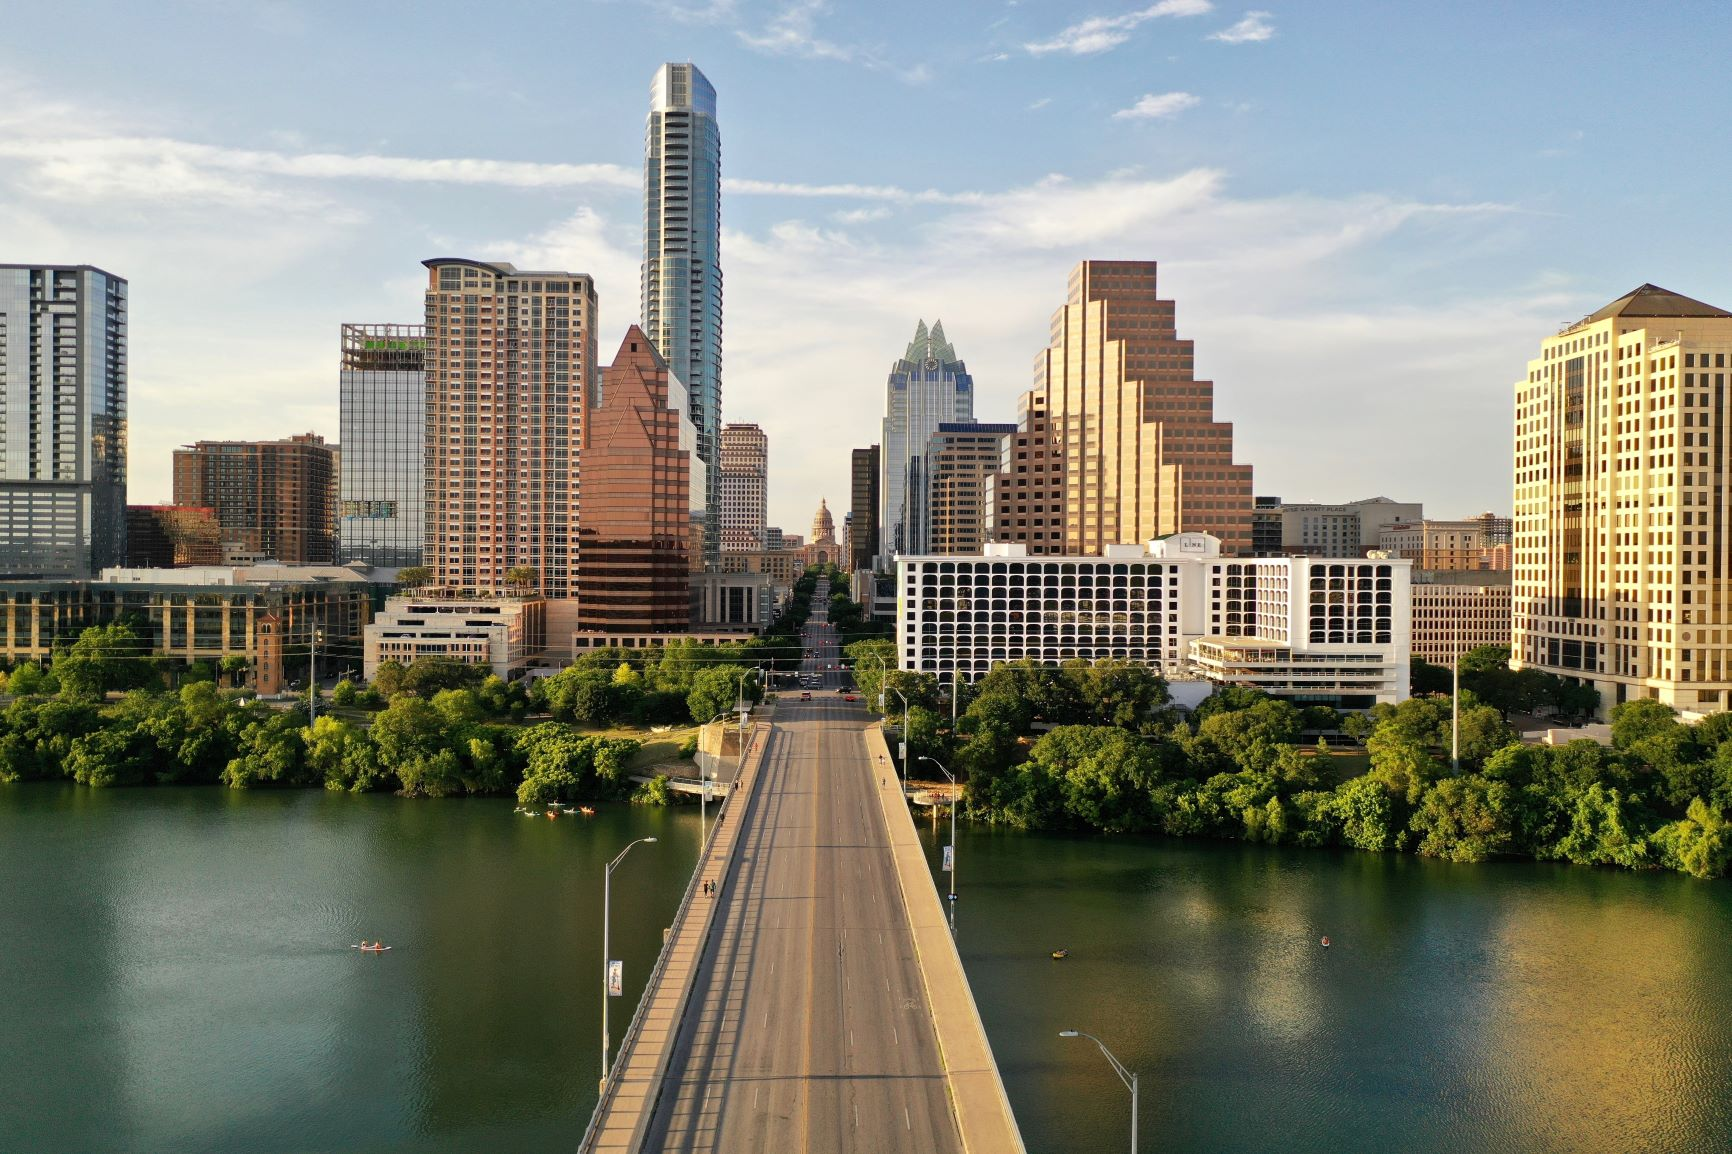 Austin on brink of becoming nation's 10th largest city